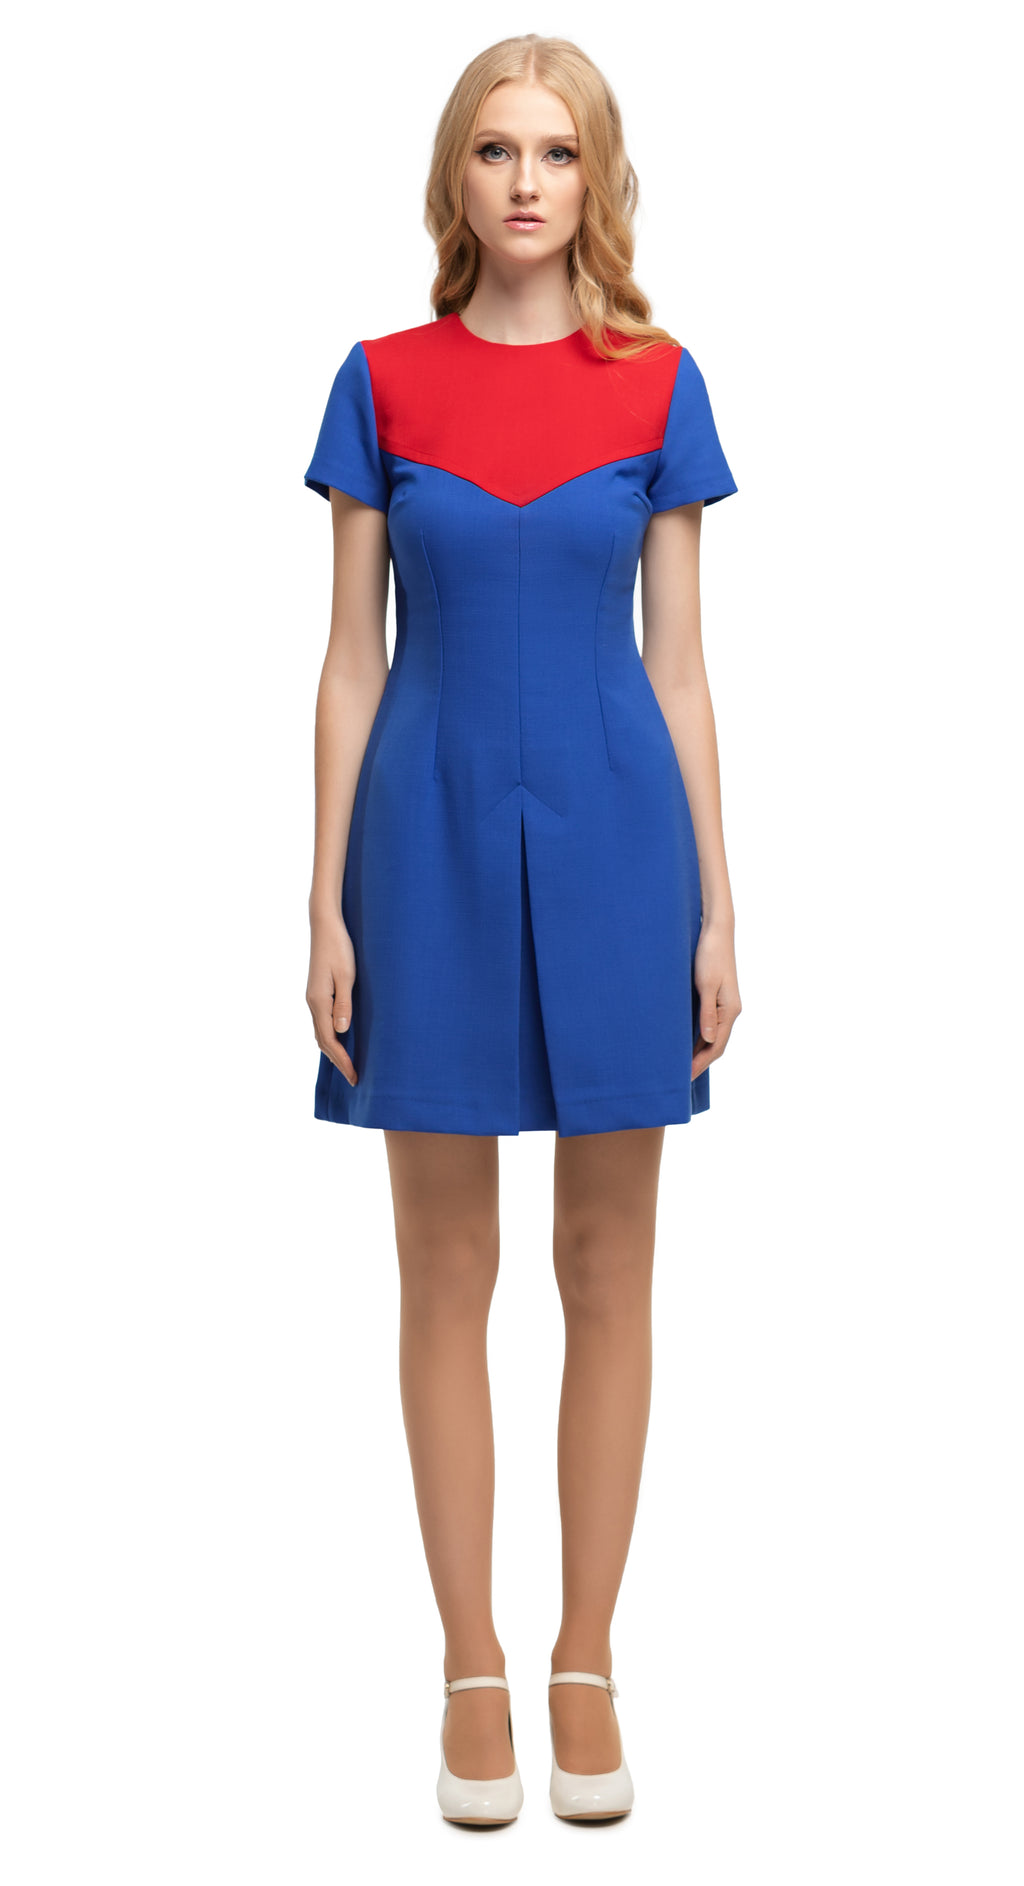 MARMALADE 60s Style Royal Blue/Red Dress